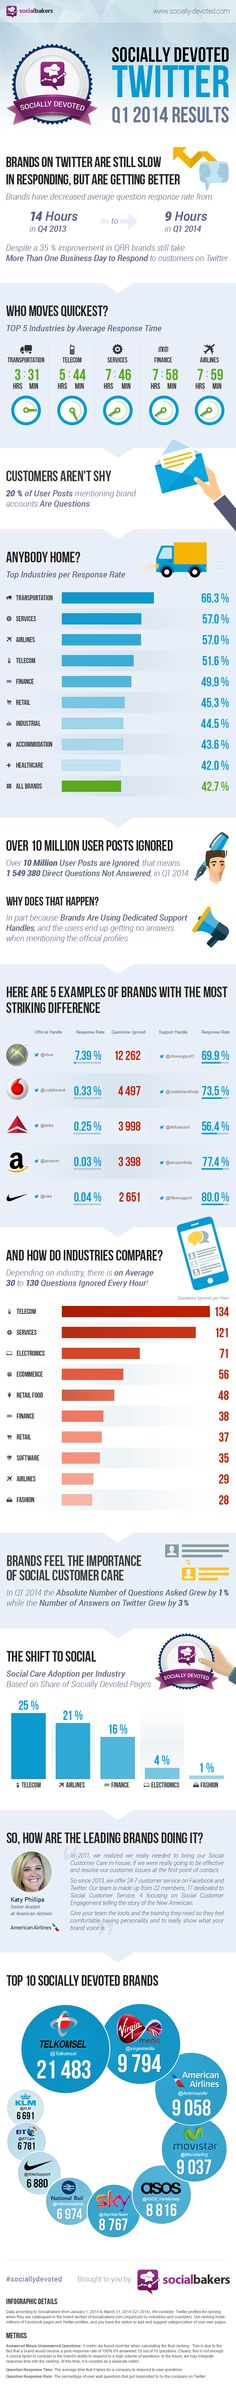 Socially Devoted Q1 Results: Good News and Bad News for #Twitter Social Care - #infographic #socialmedia